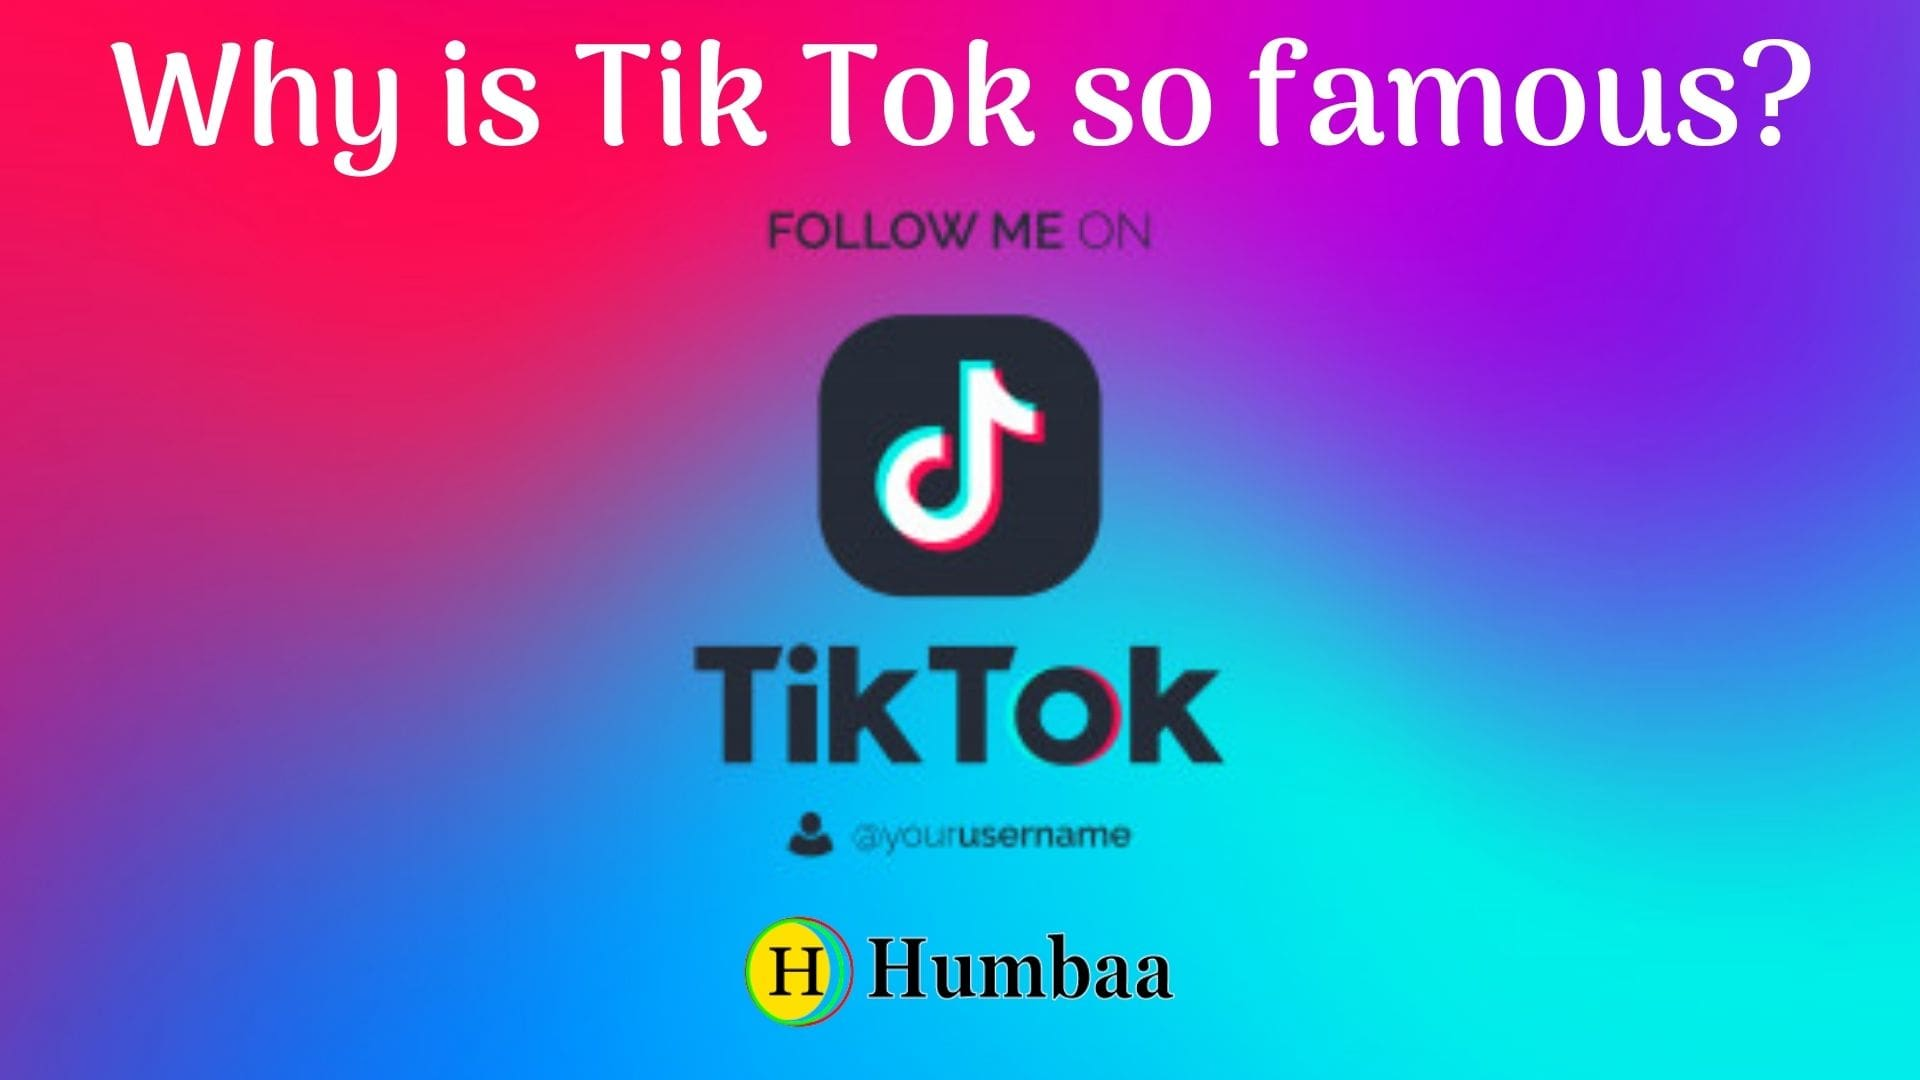 Why is Tik Tok so famous?